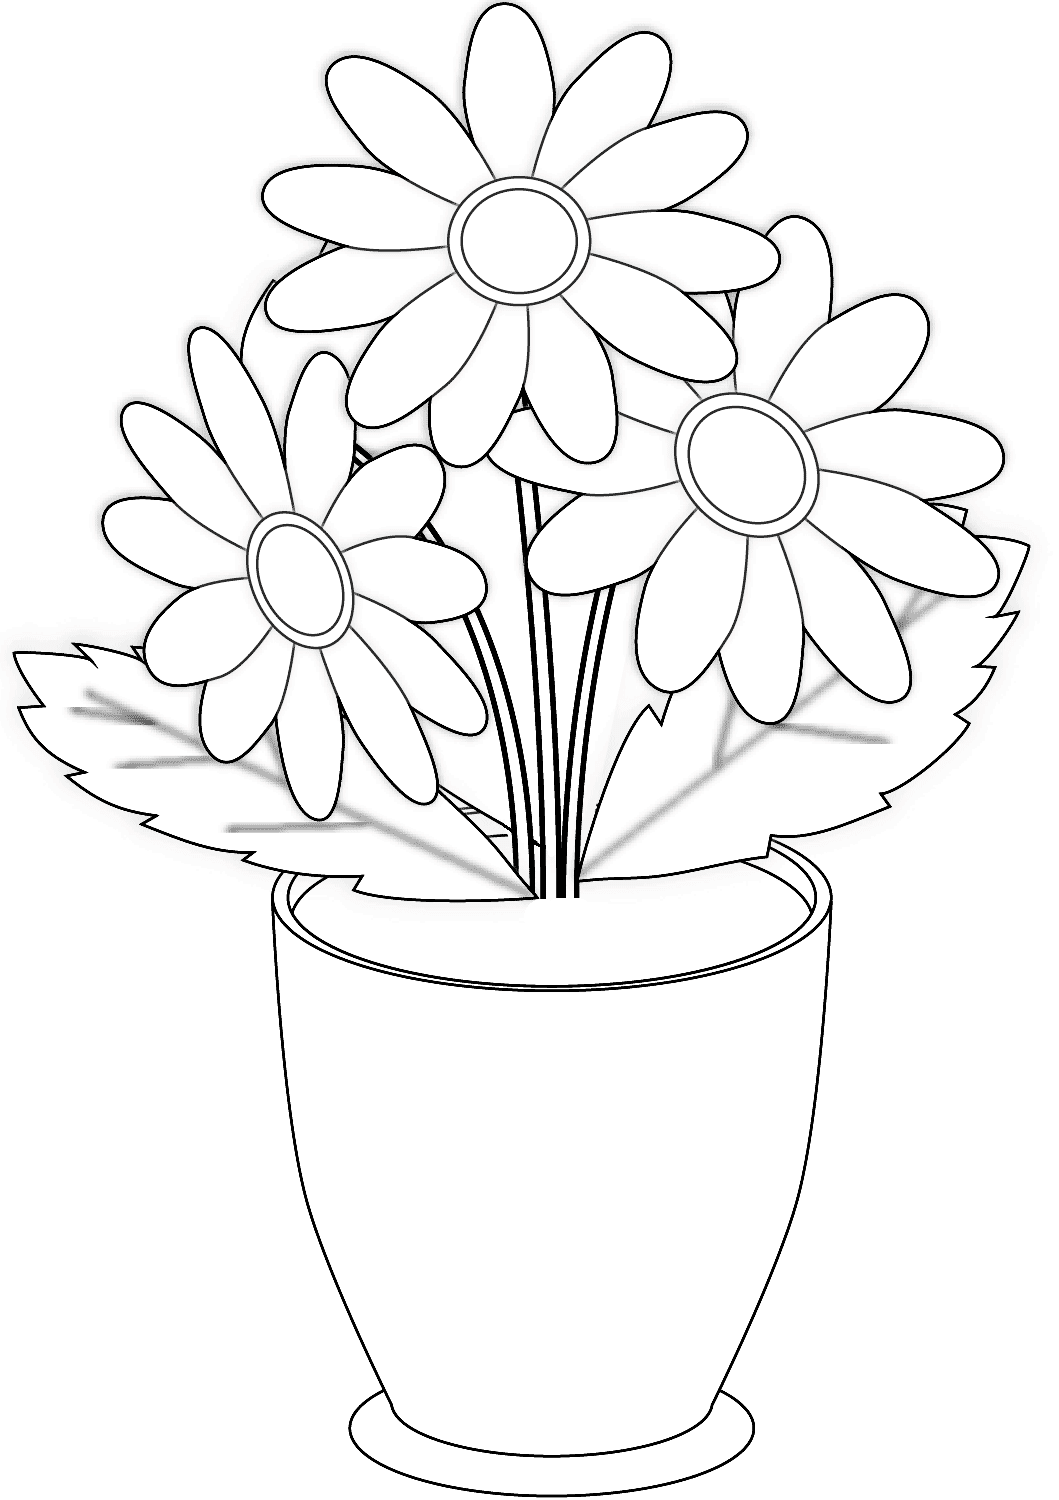 Kishorbiswas I Will Draw Detail Vector Line Art Of Your Image And Product For 5 On Fiverr Com In 2021 Printable Flower Coloring Pages Free Printable Coloring Pages Flower Coloring Pages